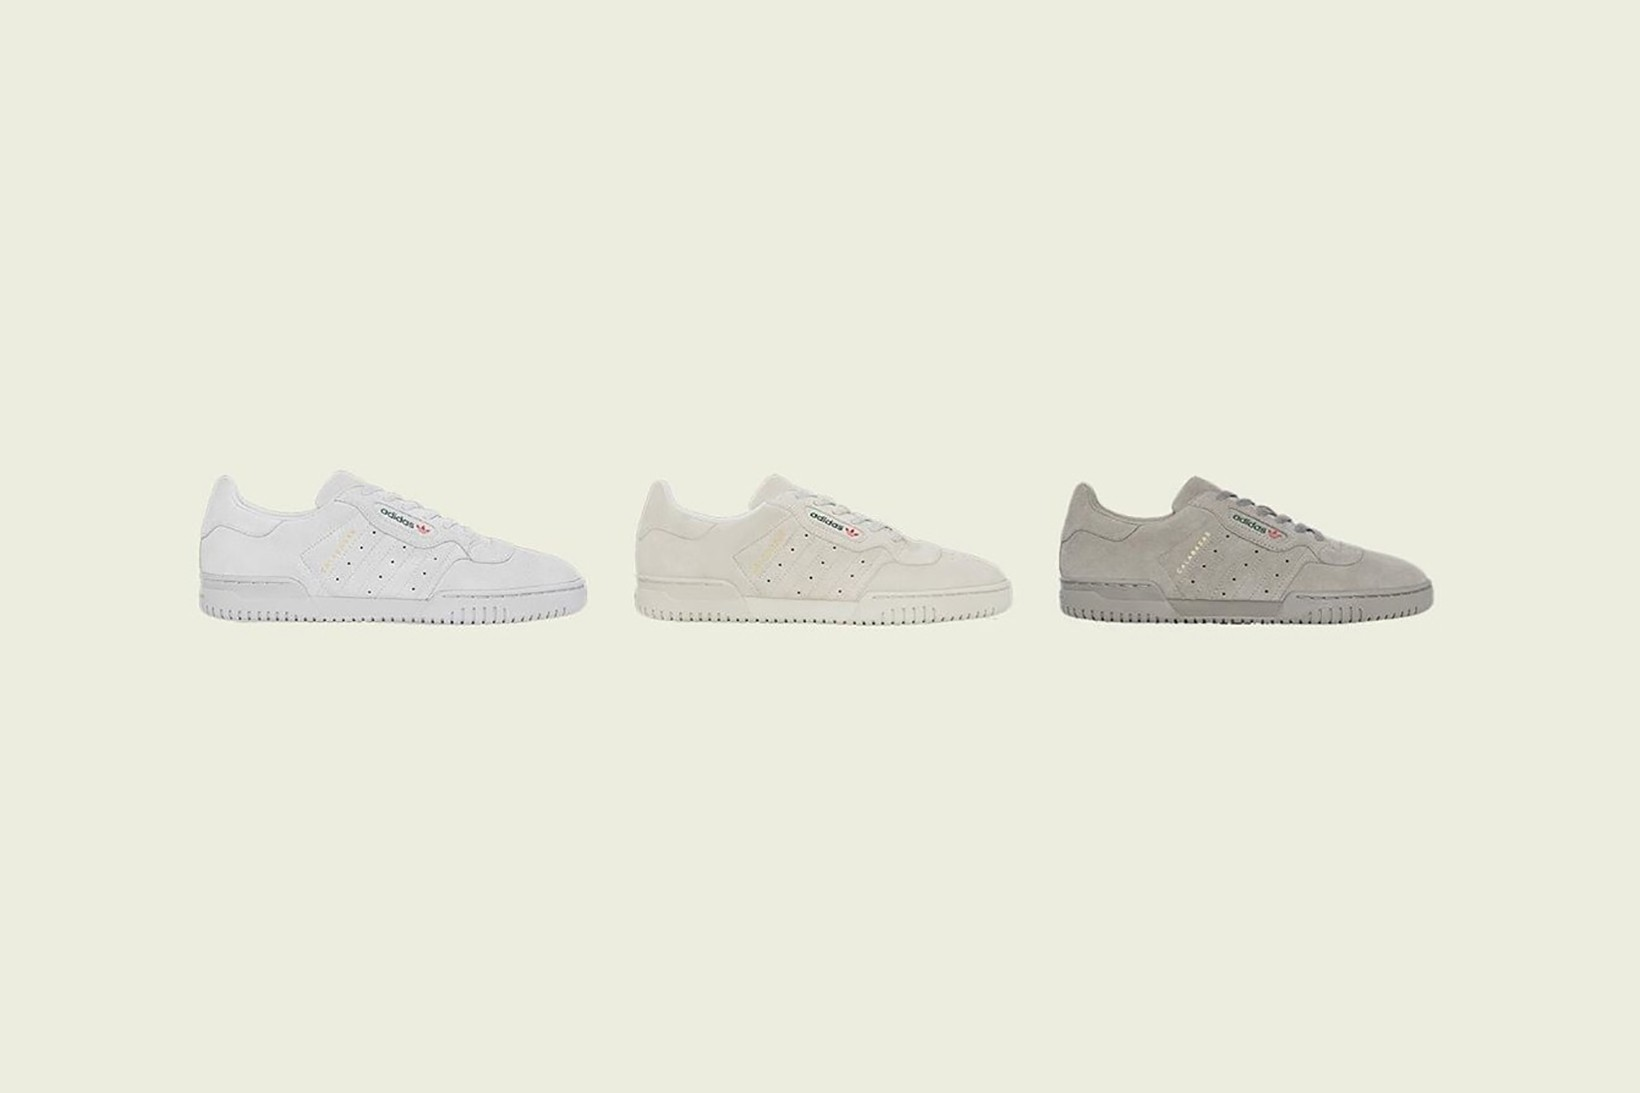 adidas Suede YEEZY Powerphase in 3 New